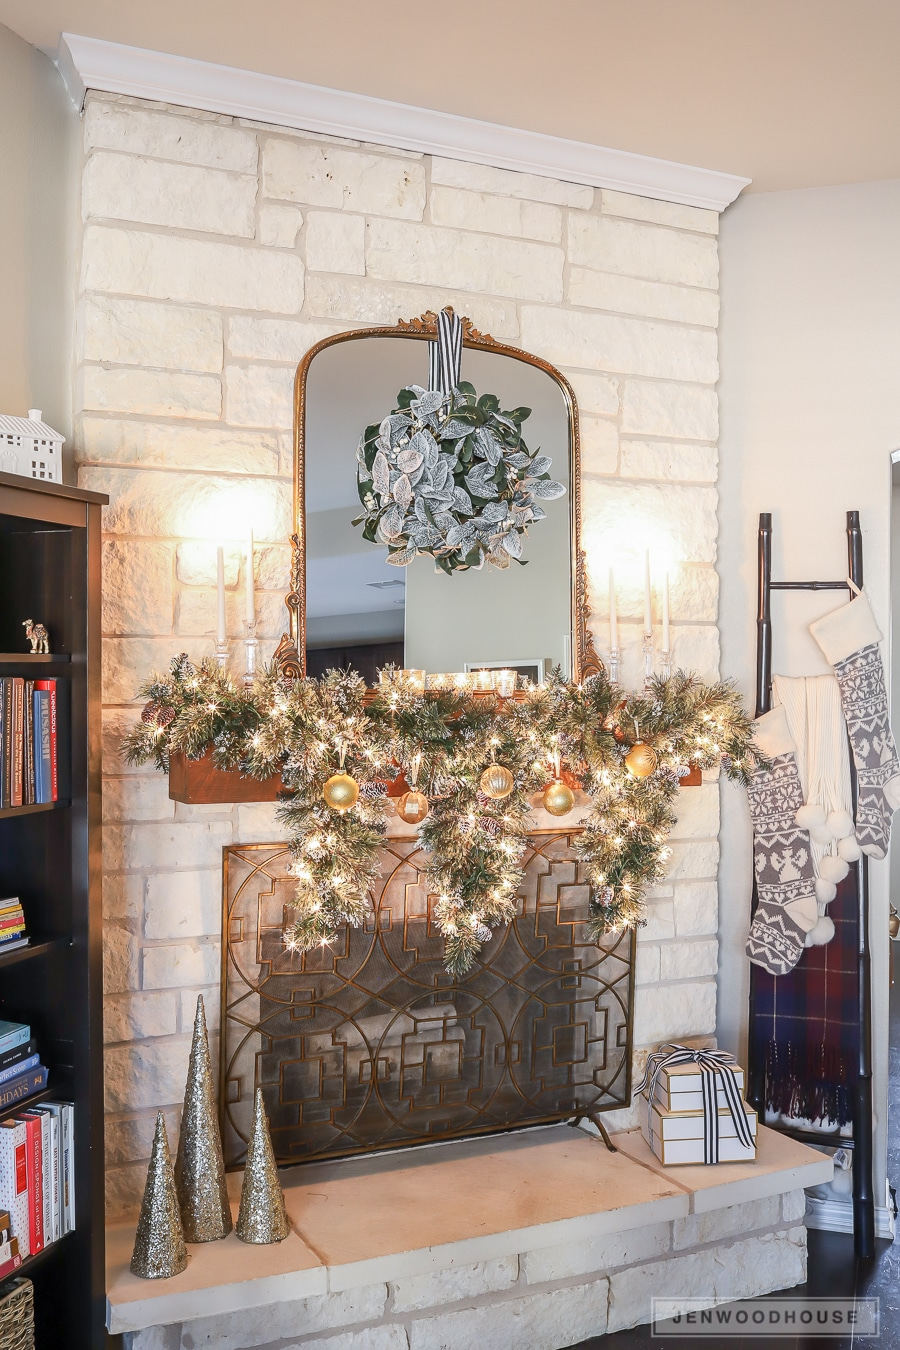 3 Ways To Decorate Your Fireplace Mantel For The Holidays